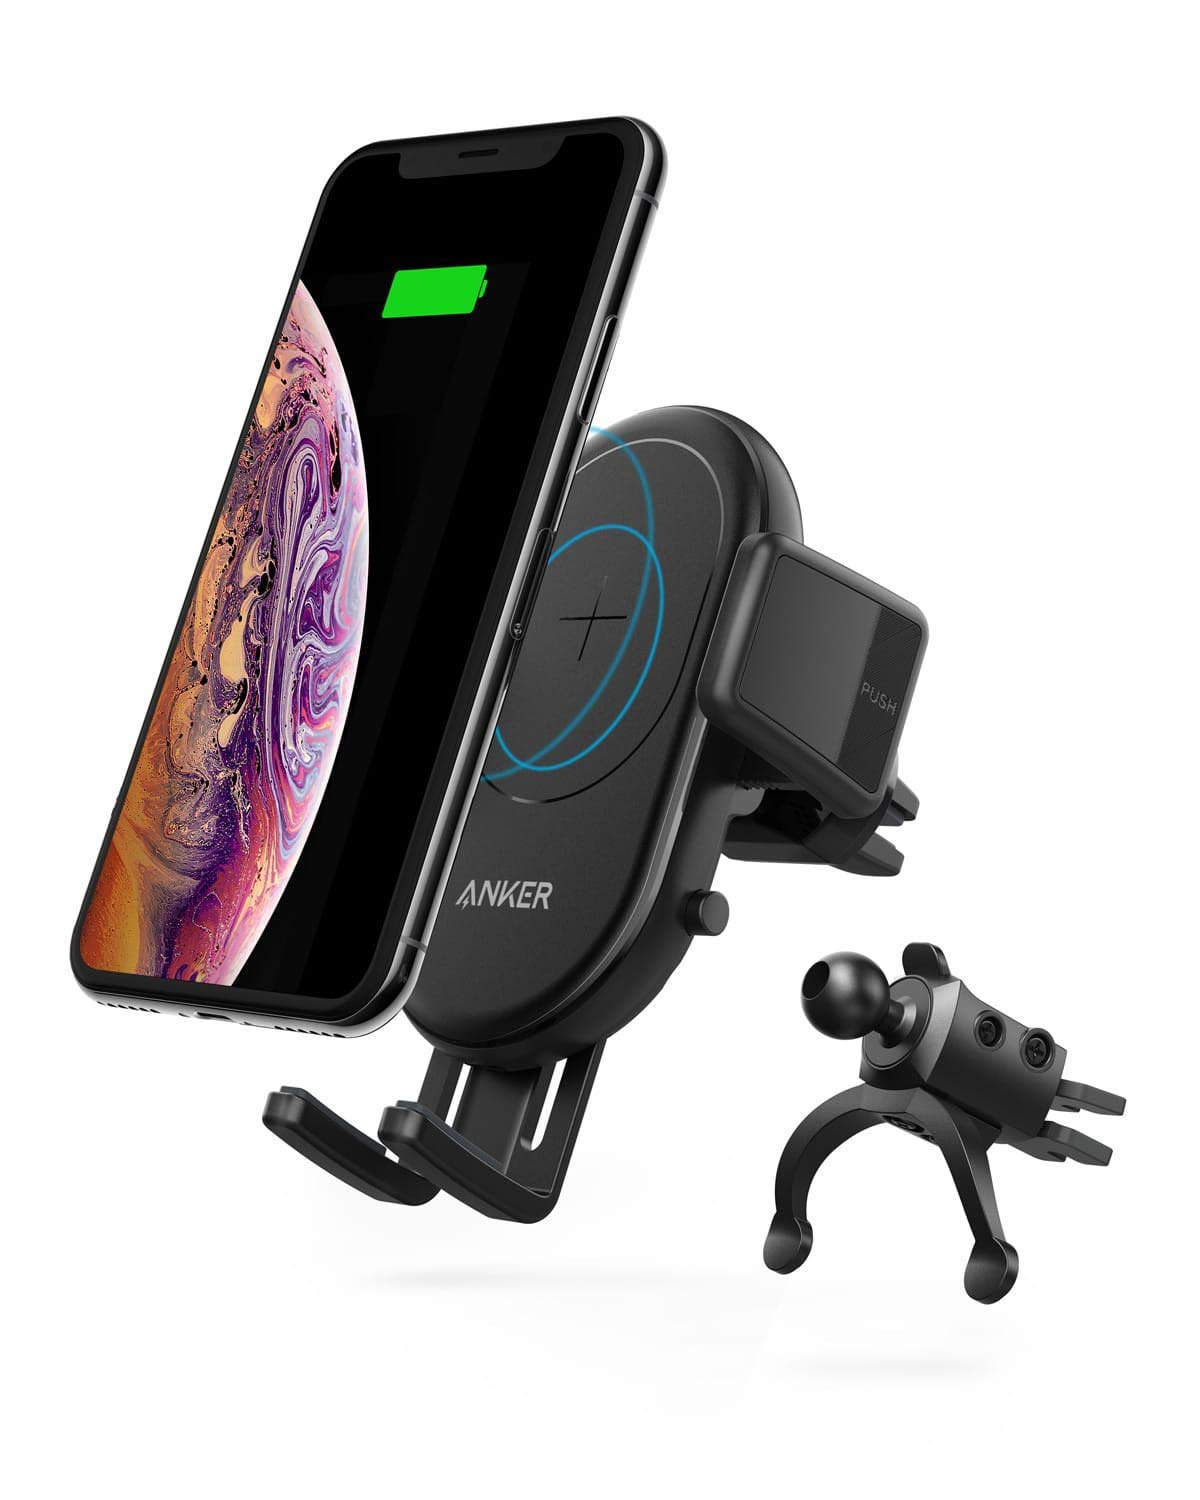 アマゾンでAnker PowerWave 7.5 Car Mount、10W対応のPadとStandが販売へ。